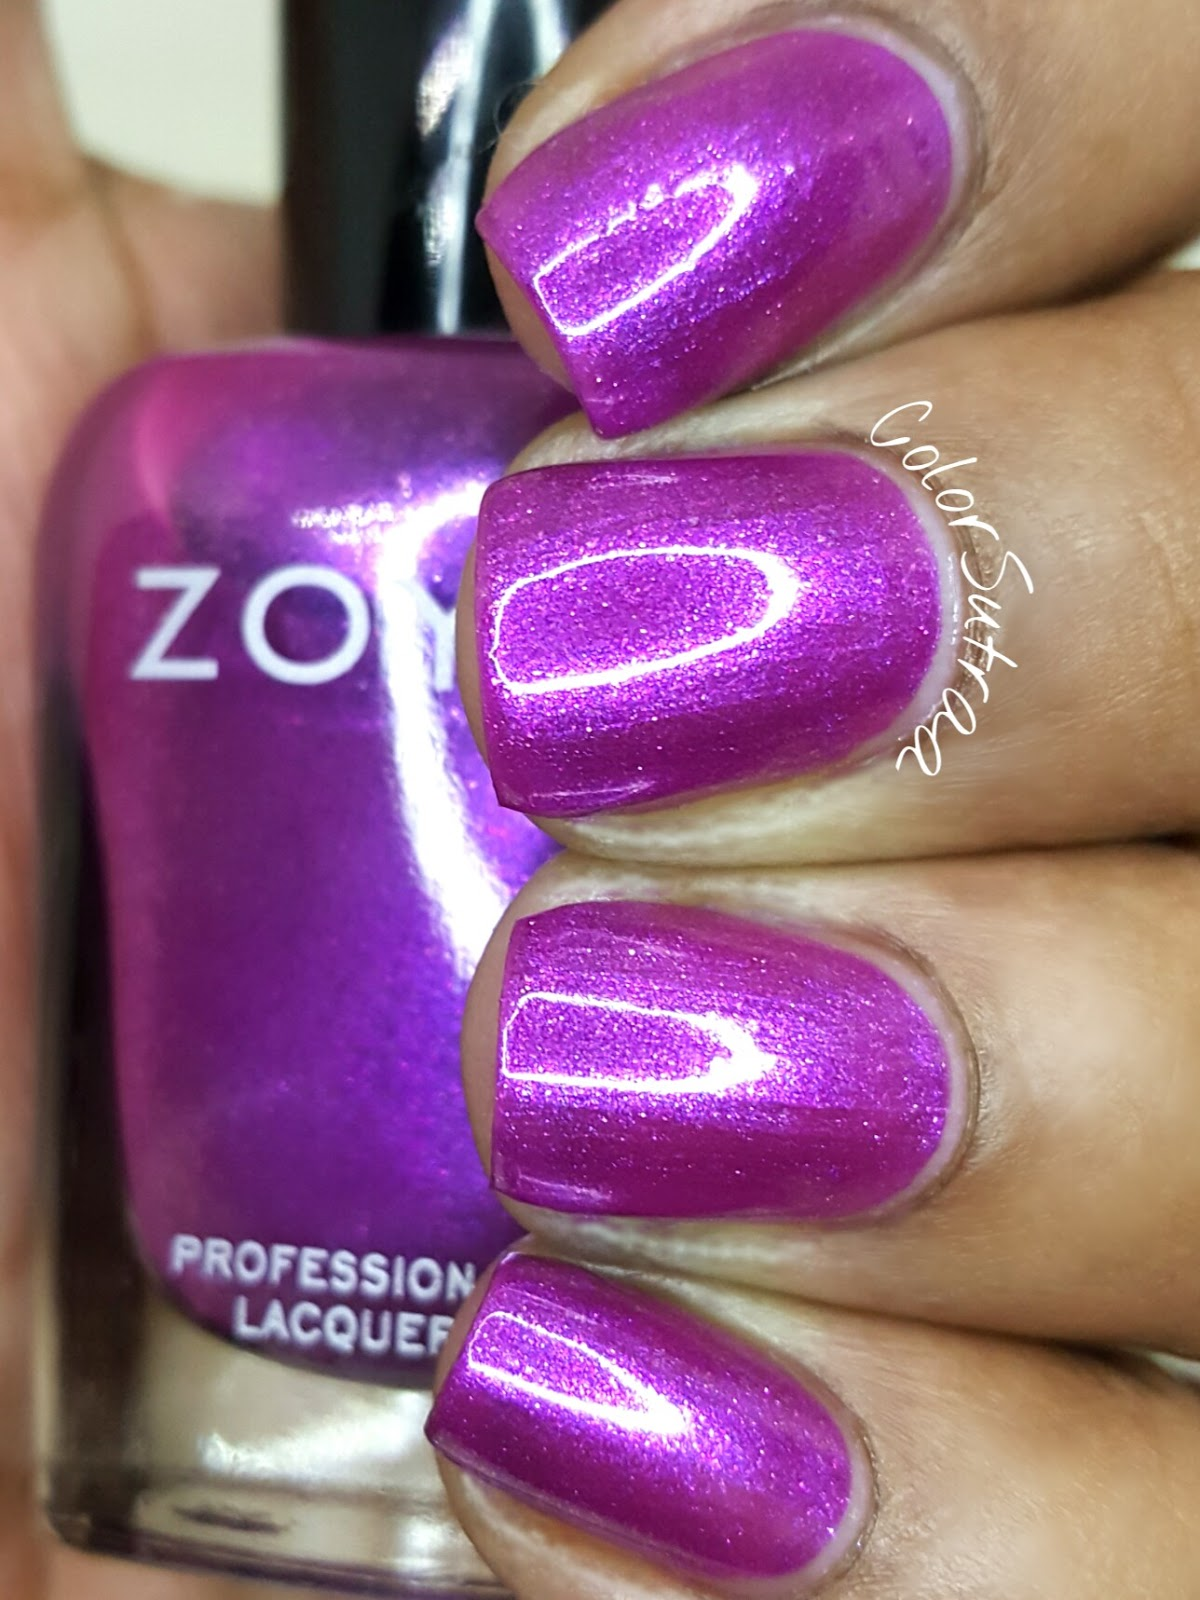 June 2017 Colorsutraa Zoya Volumizer Lash Mascara Along With The 6 Polish Set Recommends 3 Of Their Fabulous Perfect Lipsticks Belle Brooke And Violette New Shown Below